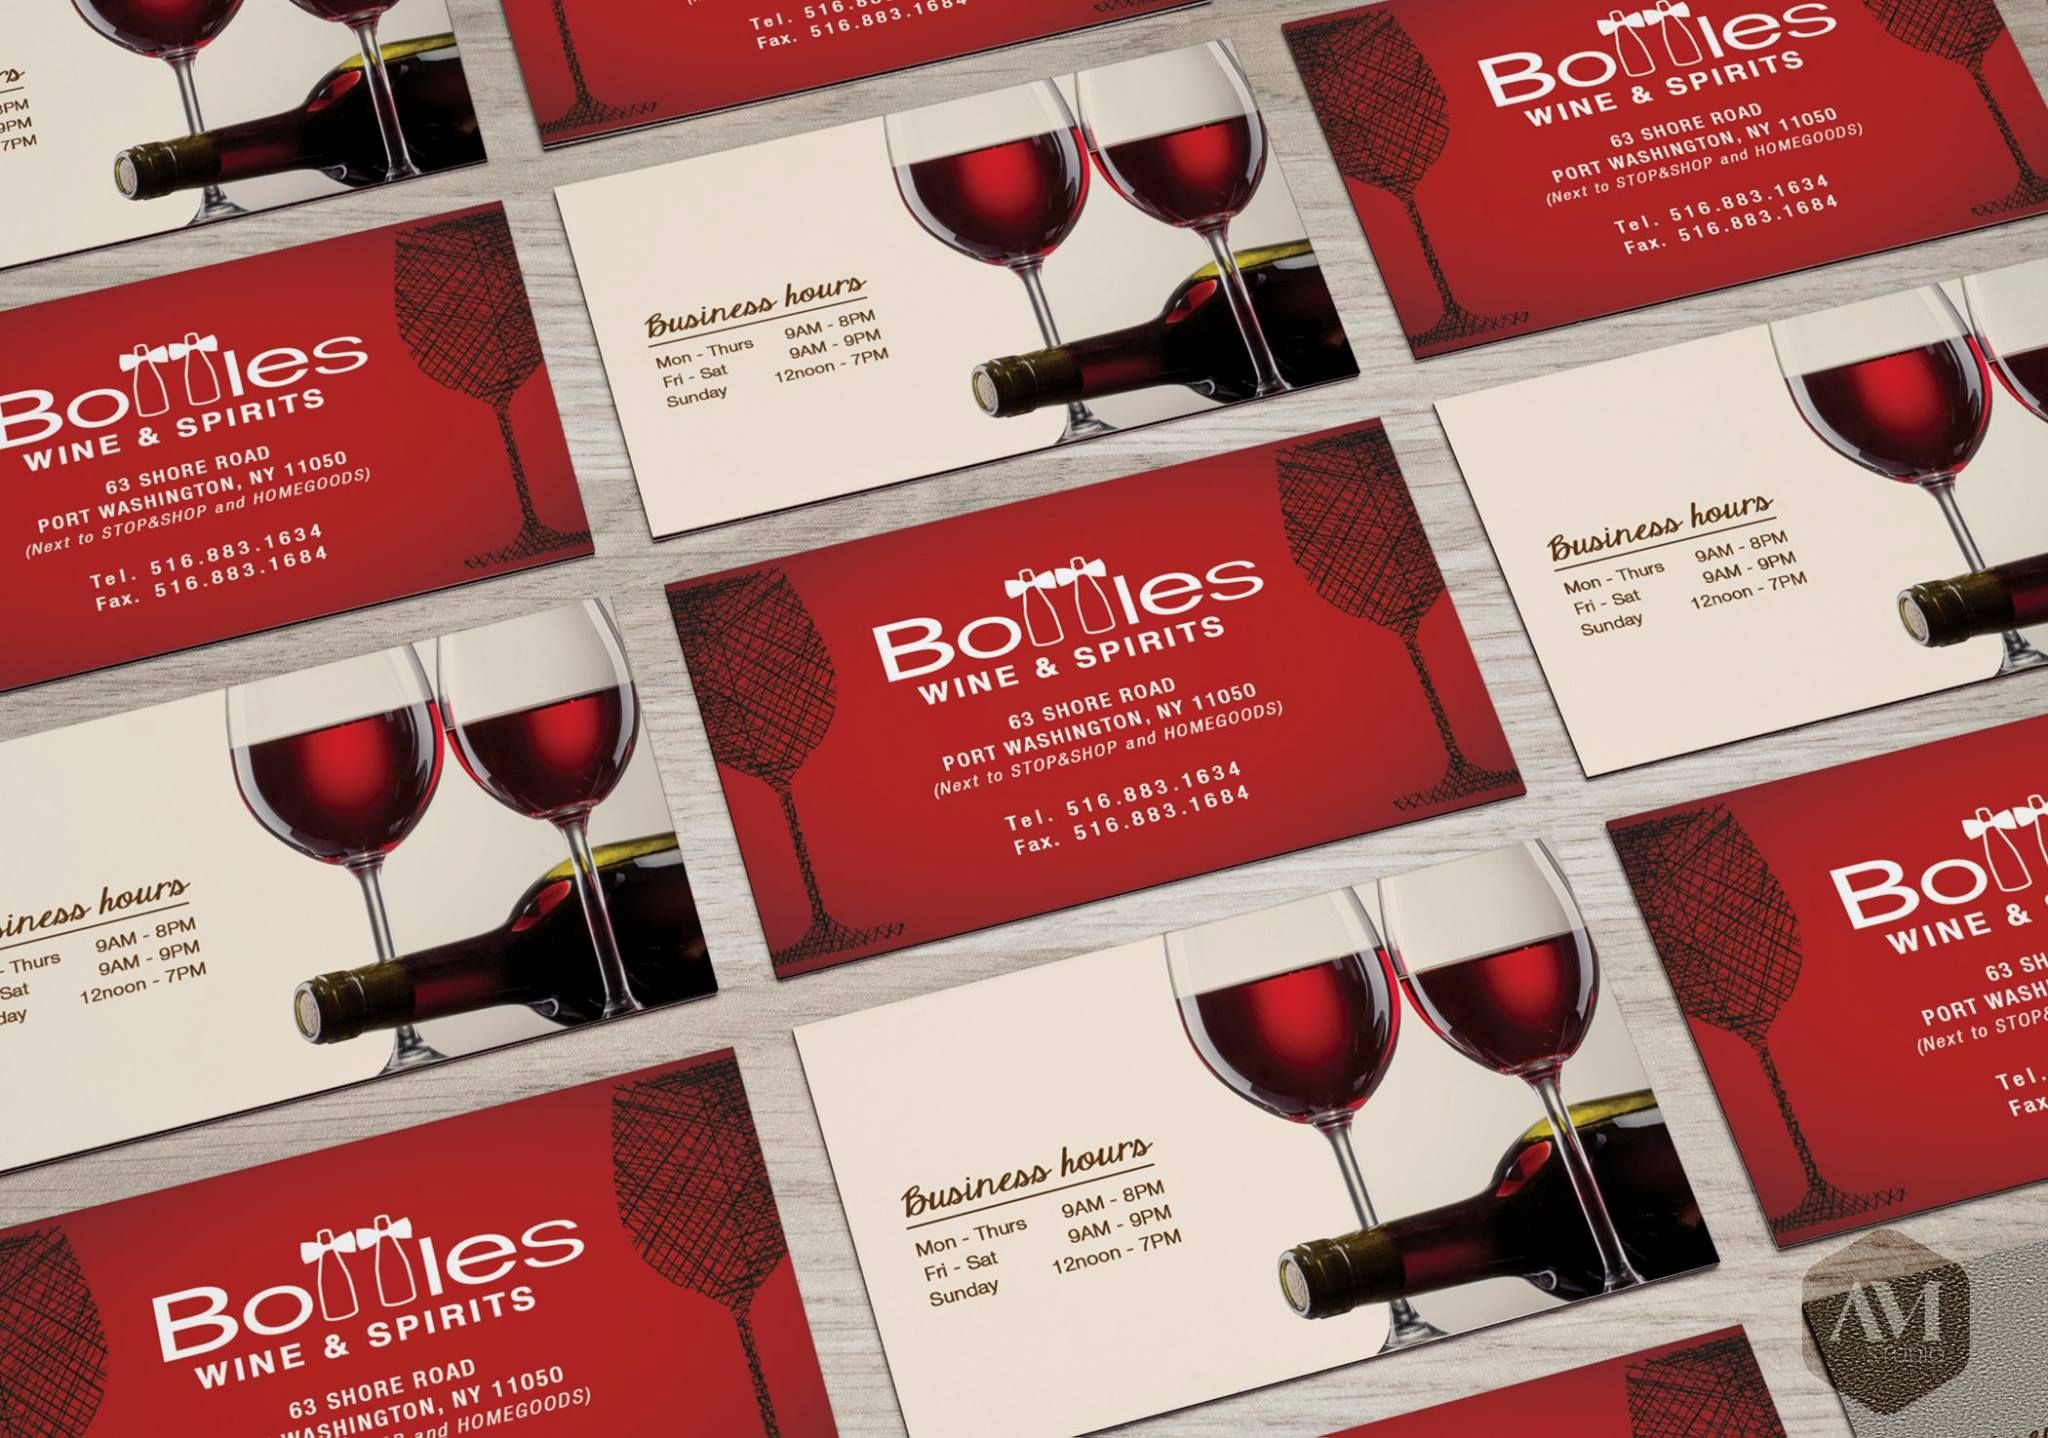 Bottle Wine Spirits Winery Business Card Design Design Amstudio Amdesign Wine And Spirits Wine Bottle Business Card Design